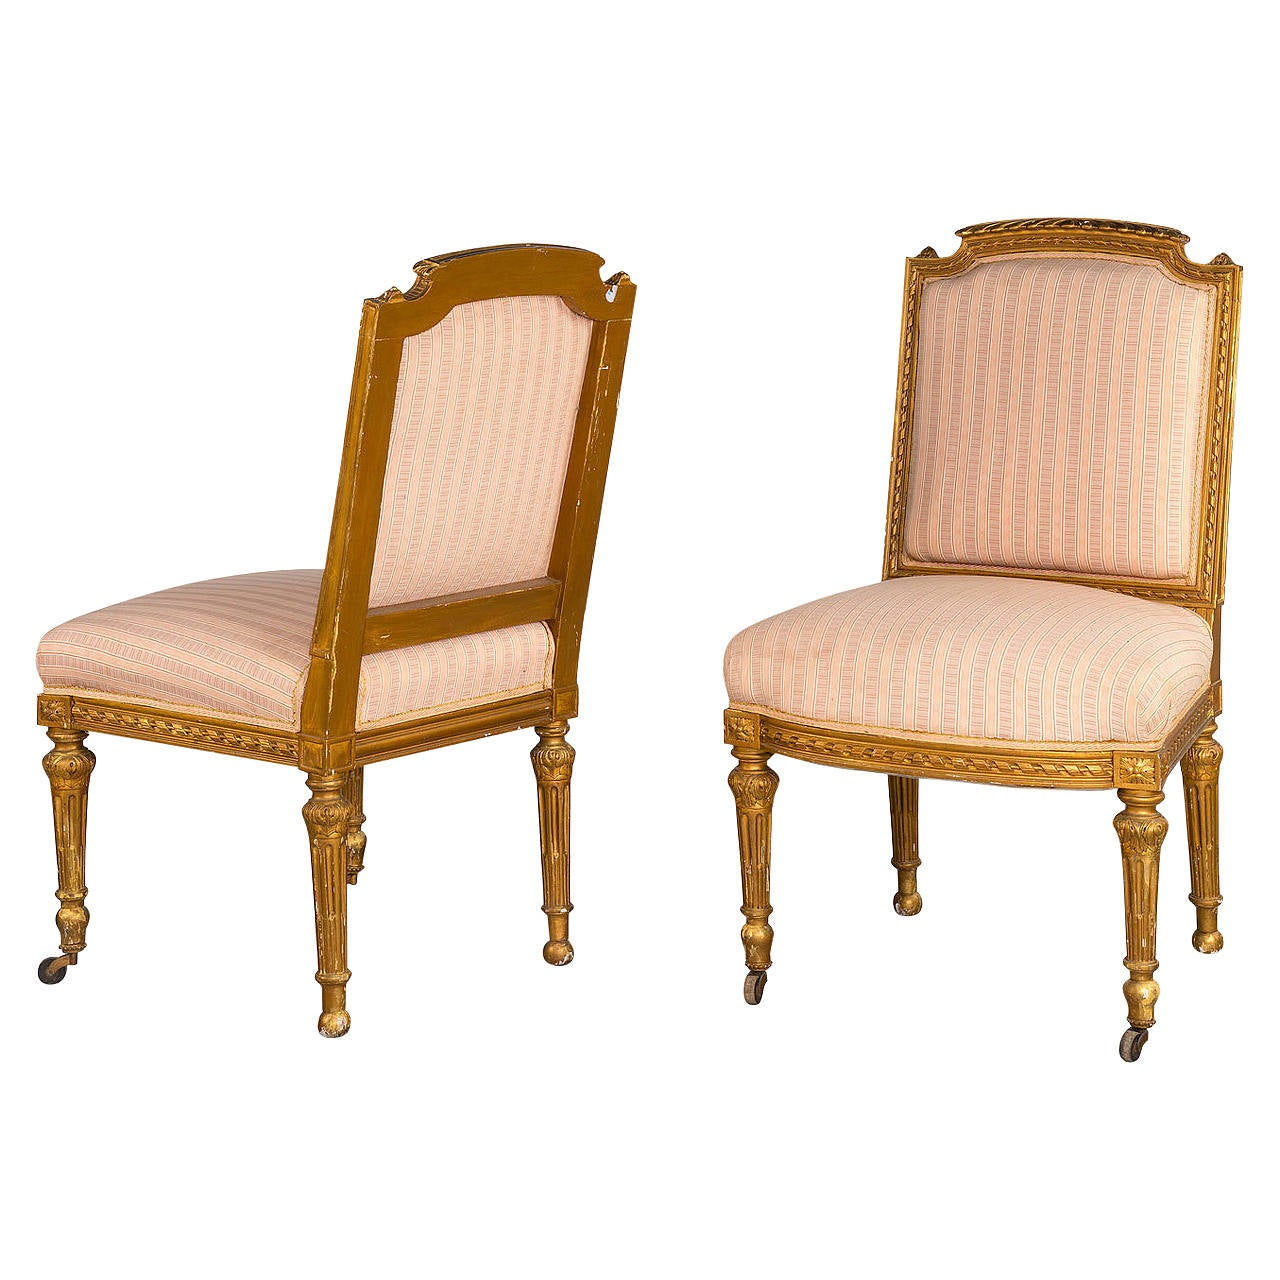 Pair Of Early 20th Century Giltwood Single Chairs